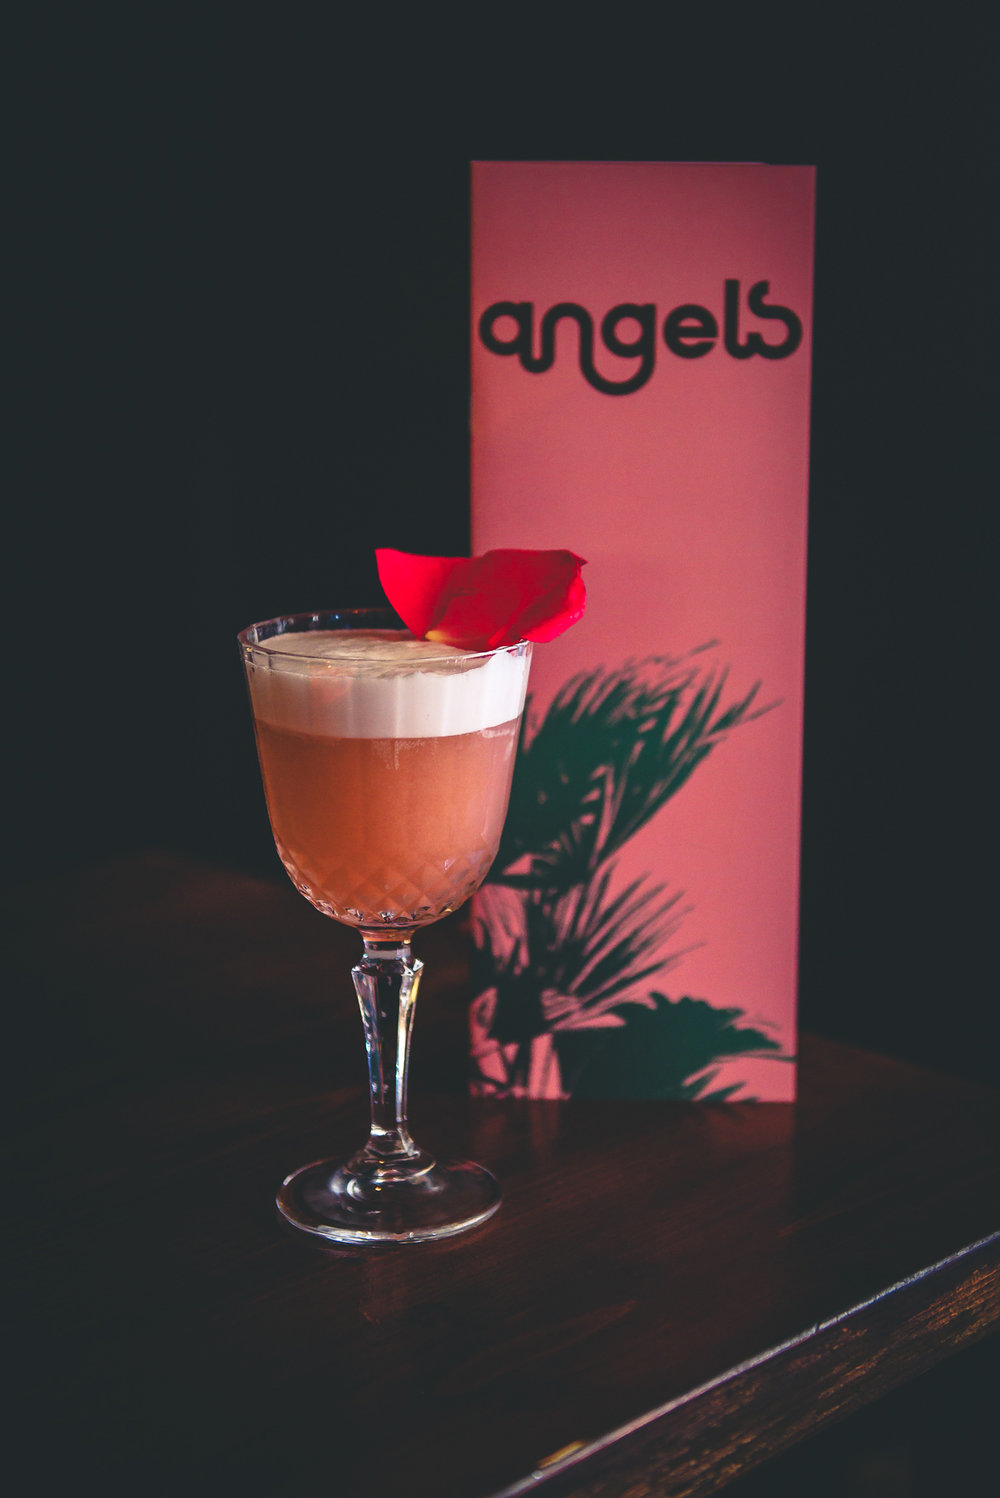 Angels cocktail bar Oxford 19.01.2019-100.jpg